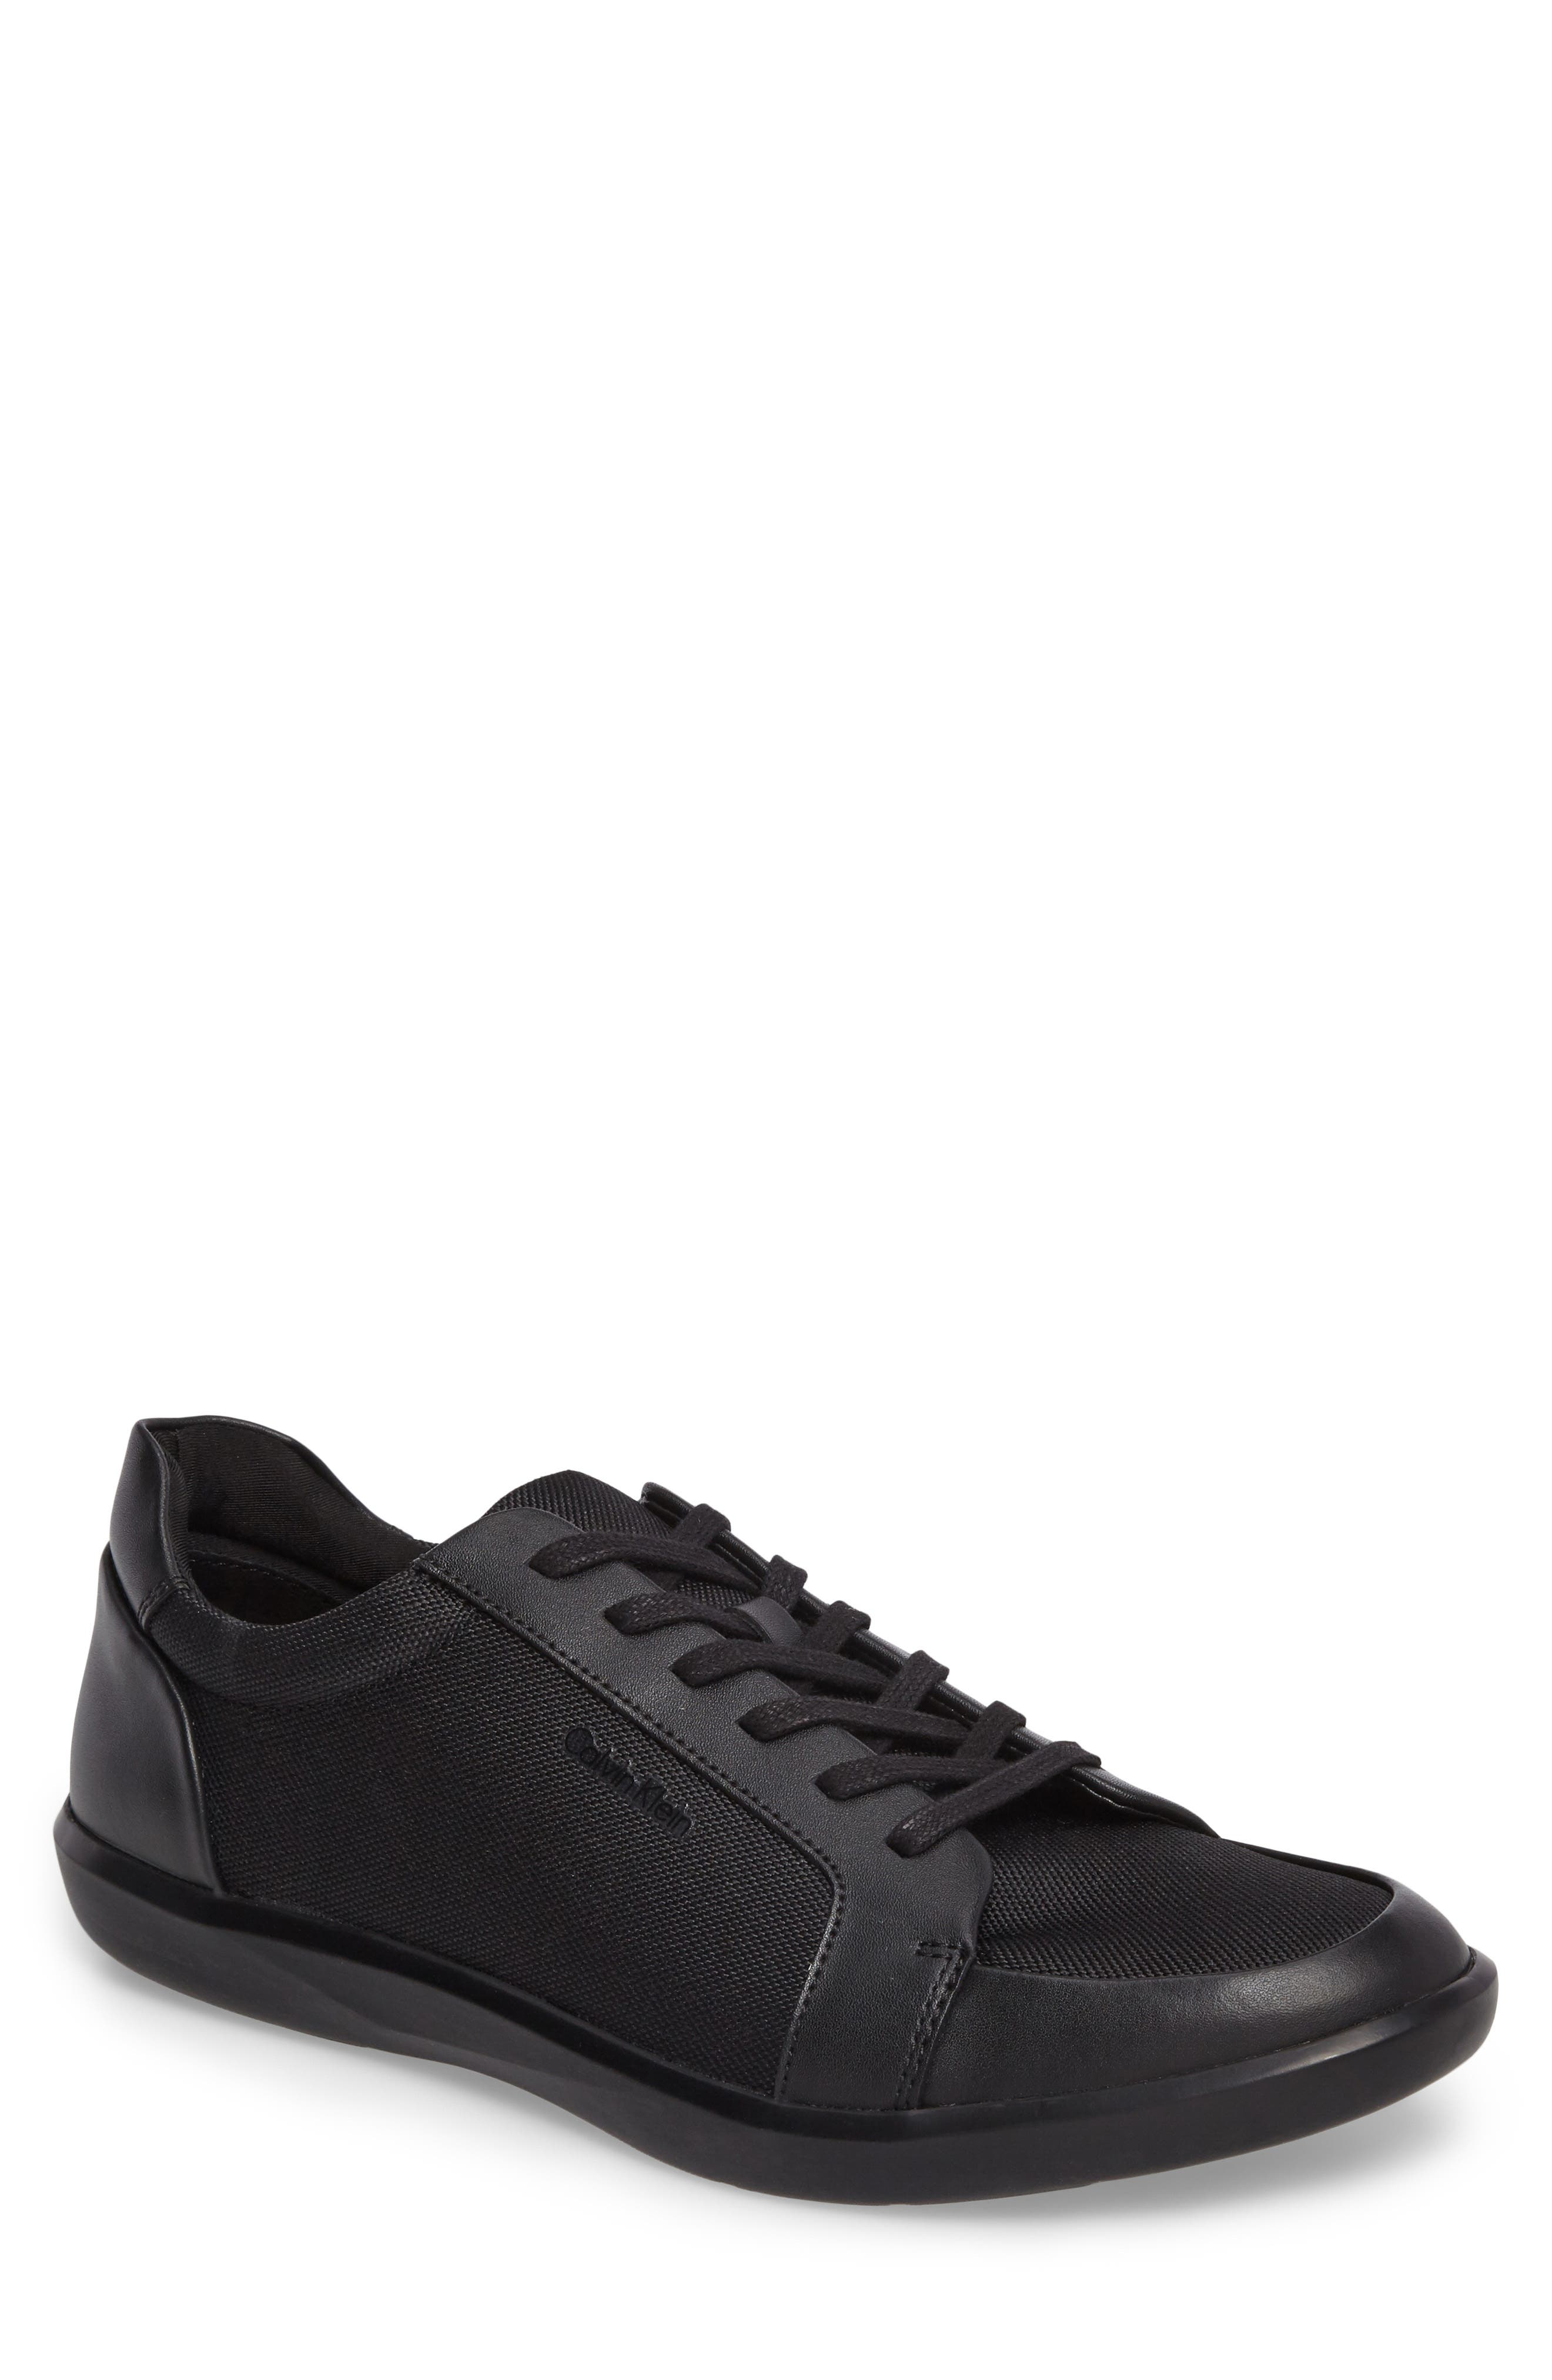 Macabee Sneaker,                             Main thumbnail 1, color,                             Black